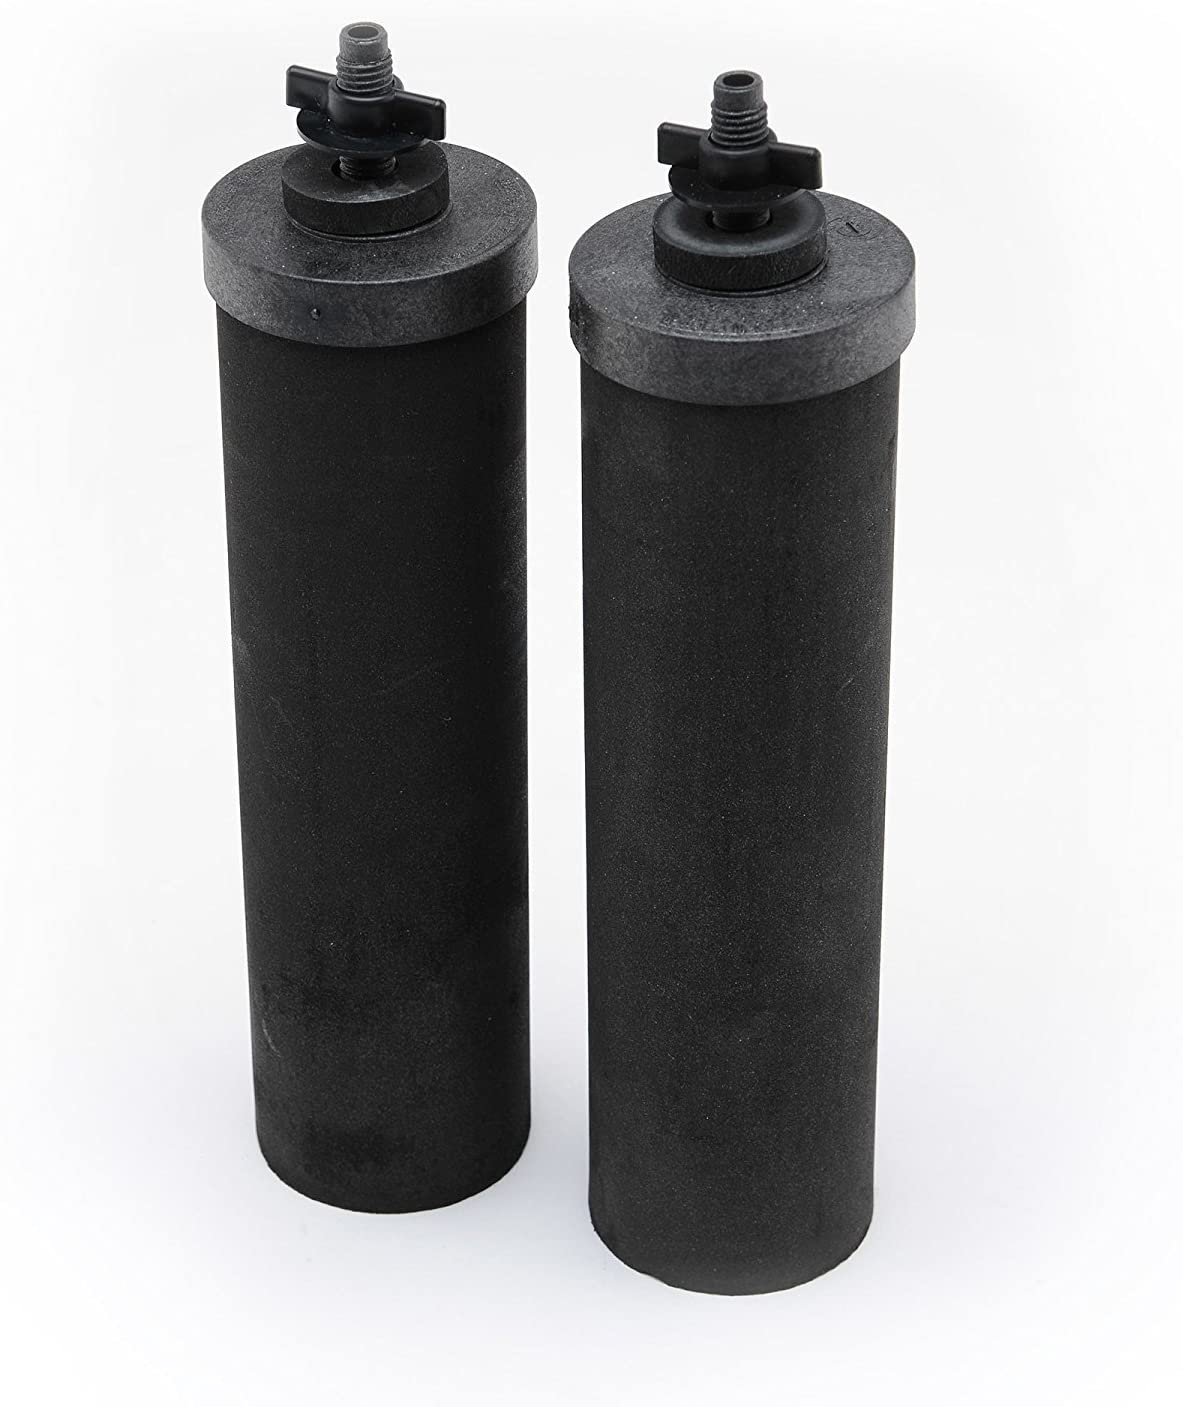 6 Total 3-Sets of Berkey BB9-2 Replacement Black Purification Elements